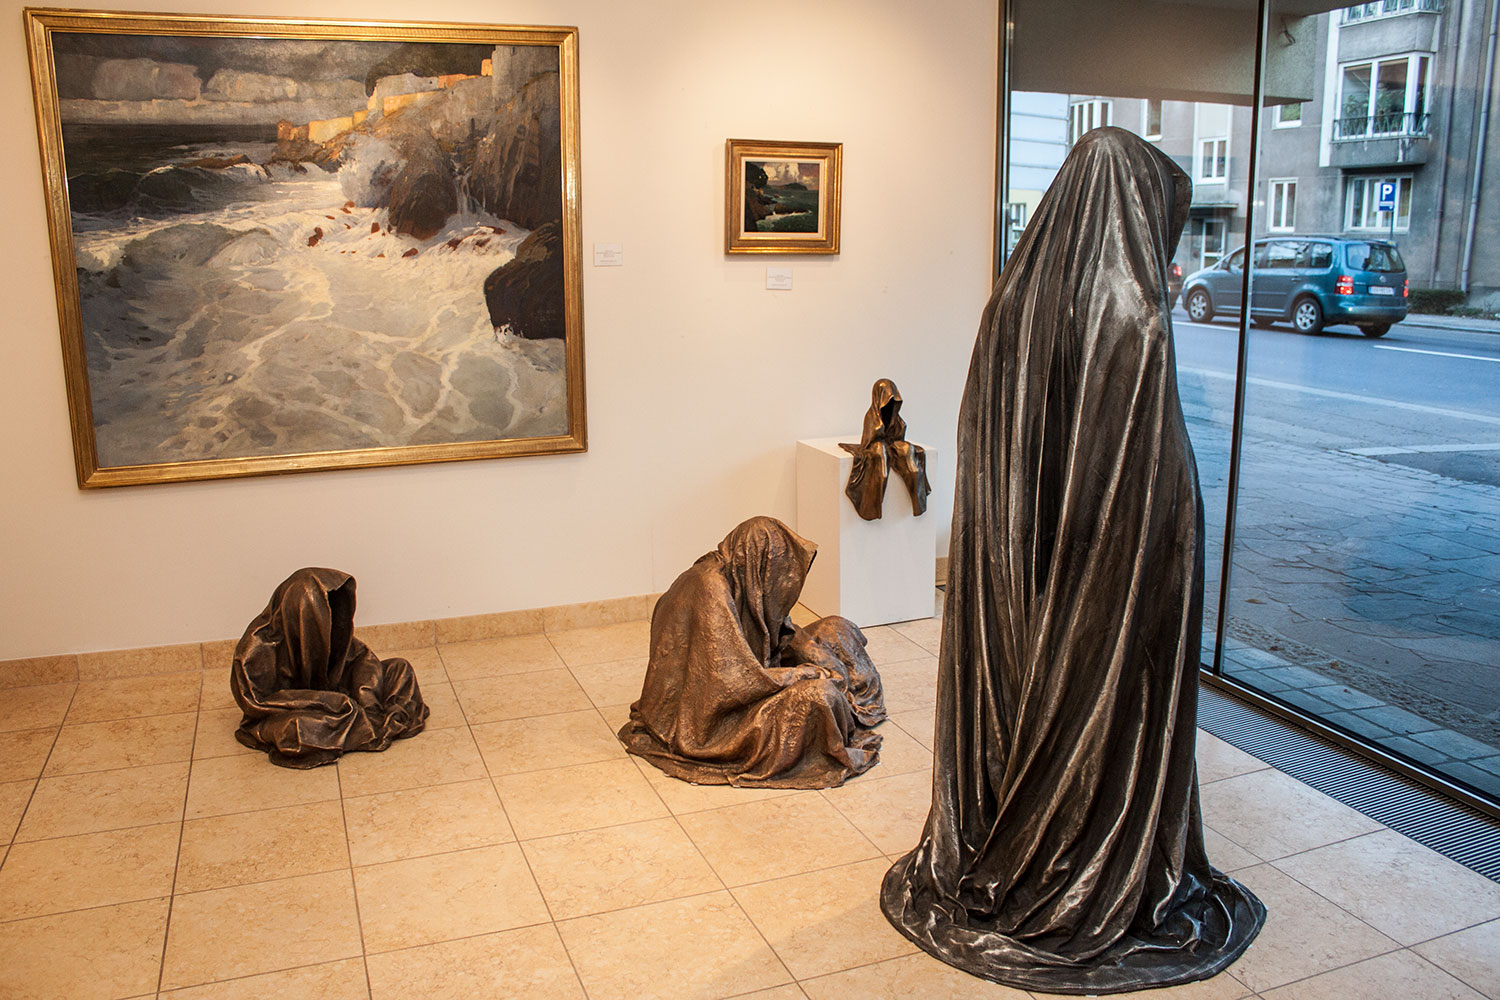 kunsthandel-freller-antik-haus-modern-art-and-antiques-sculpture-gallery-guardians-of-time-manfred-kili-kielnhofer-austria9666